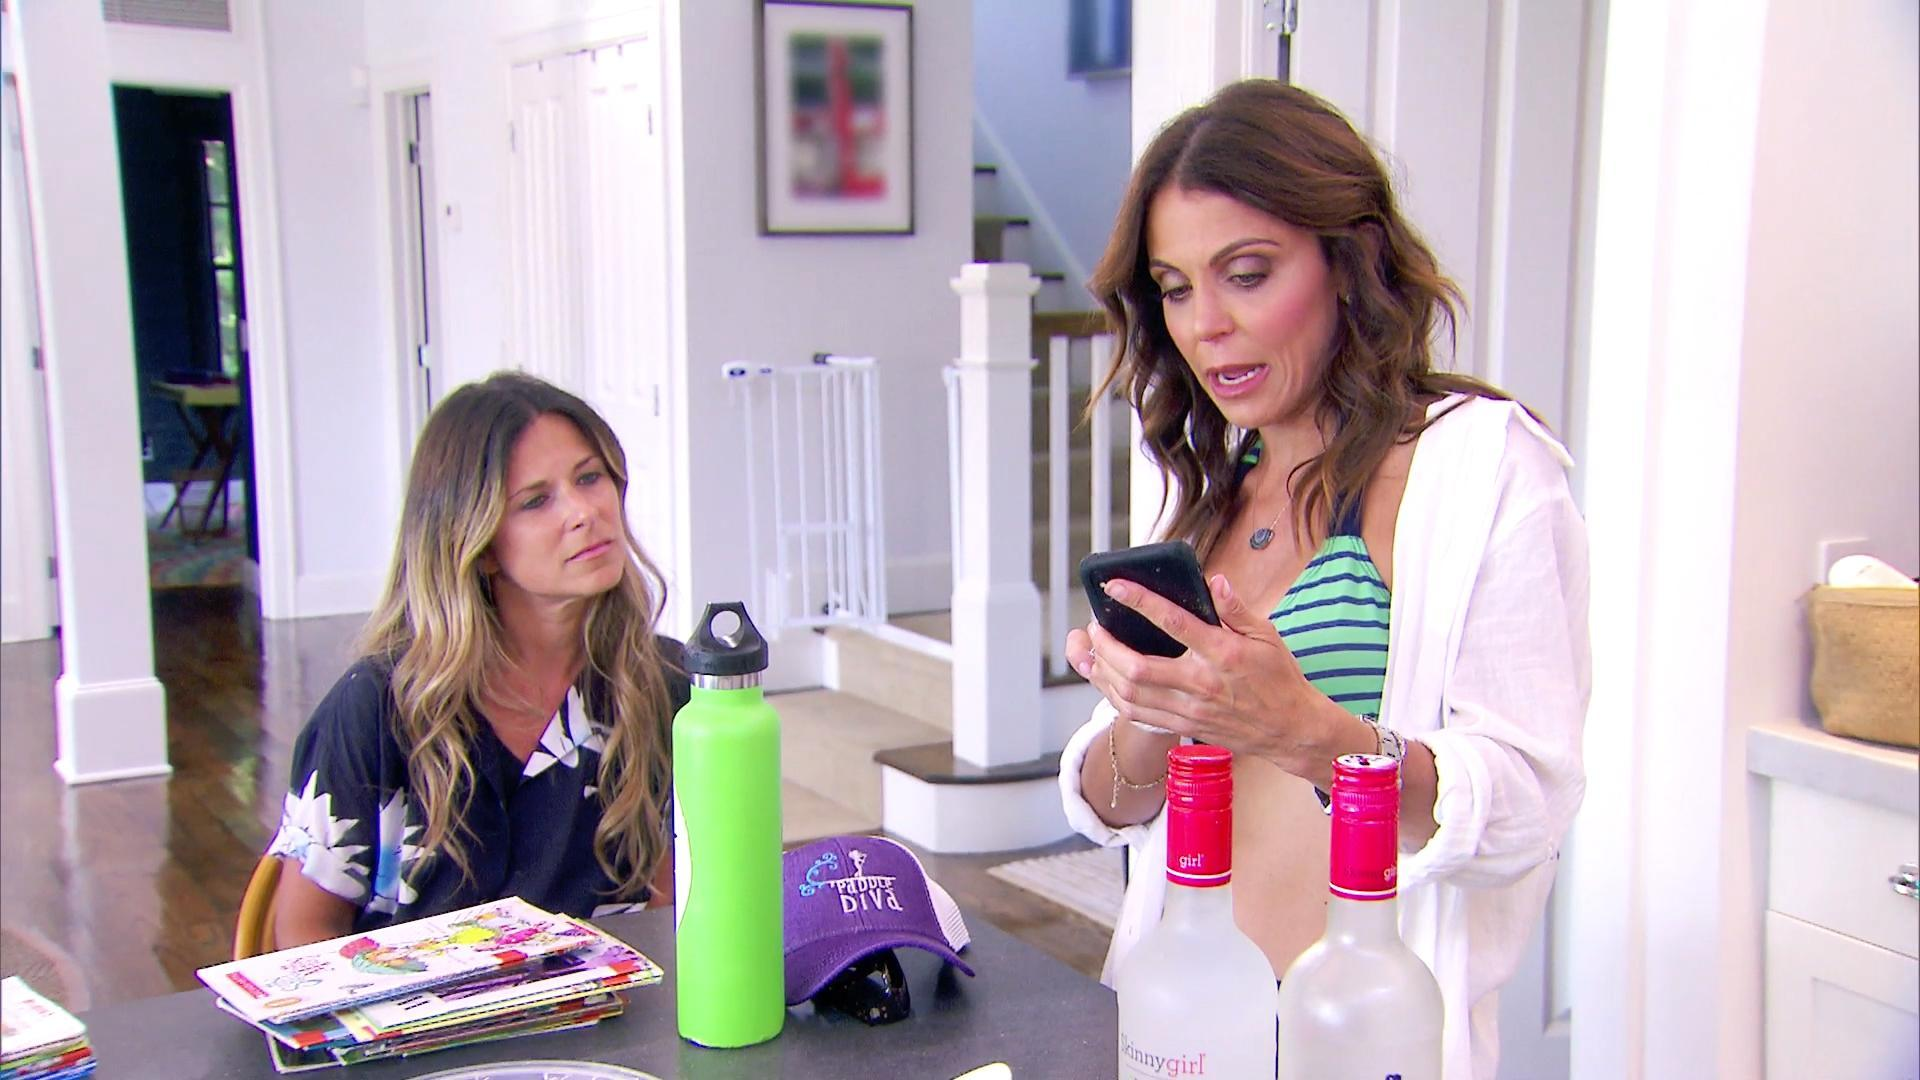 Stream And Watch The Real Housewives of New York City Online